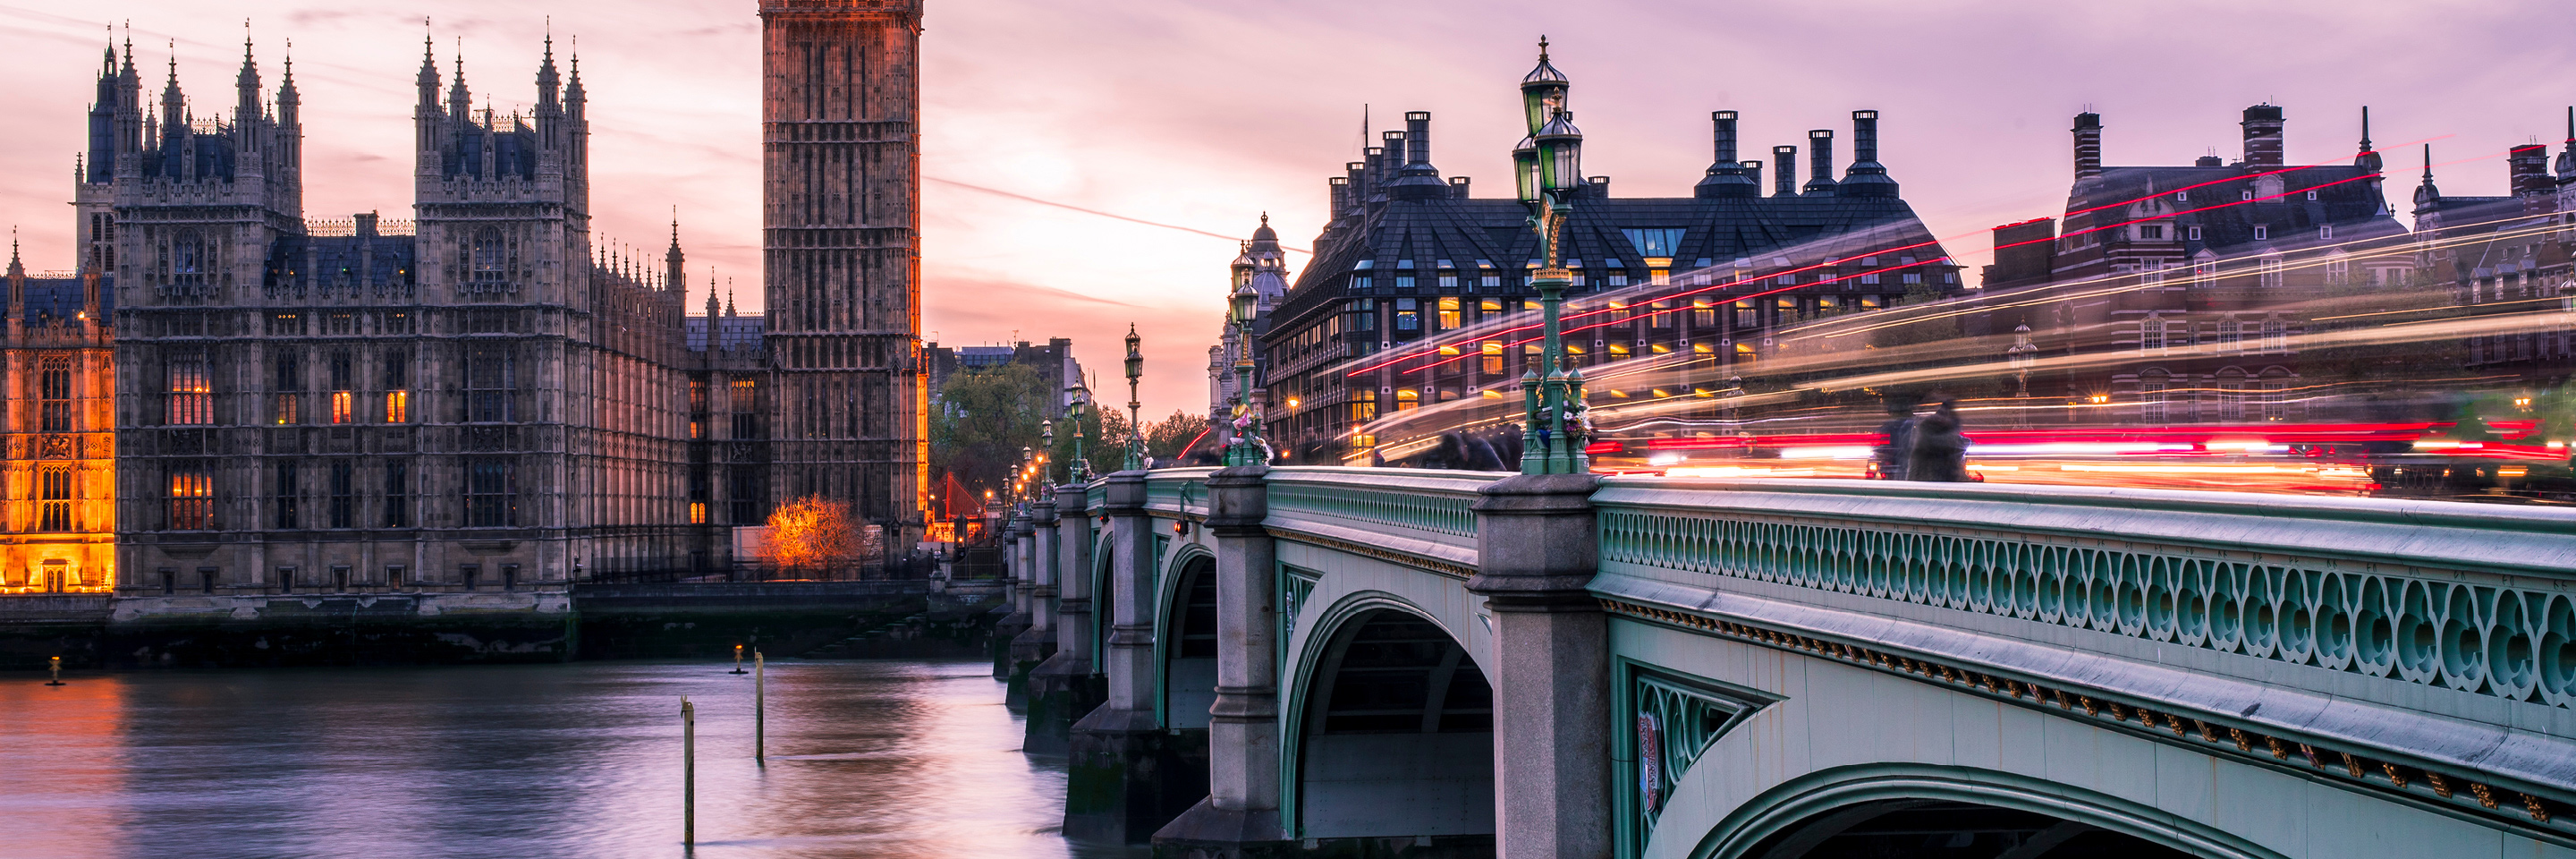 Burgundy & Provence with 2 Nights in Paris & 3 Nights in London (Northbound)